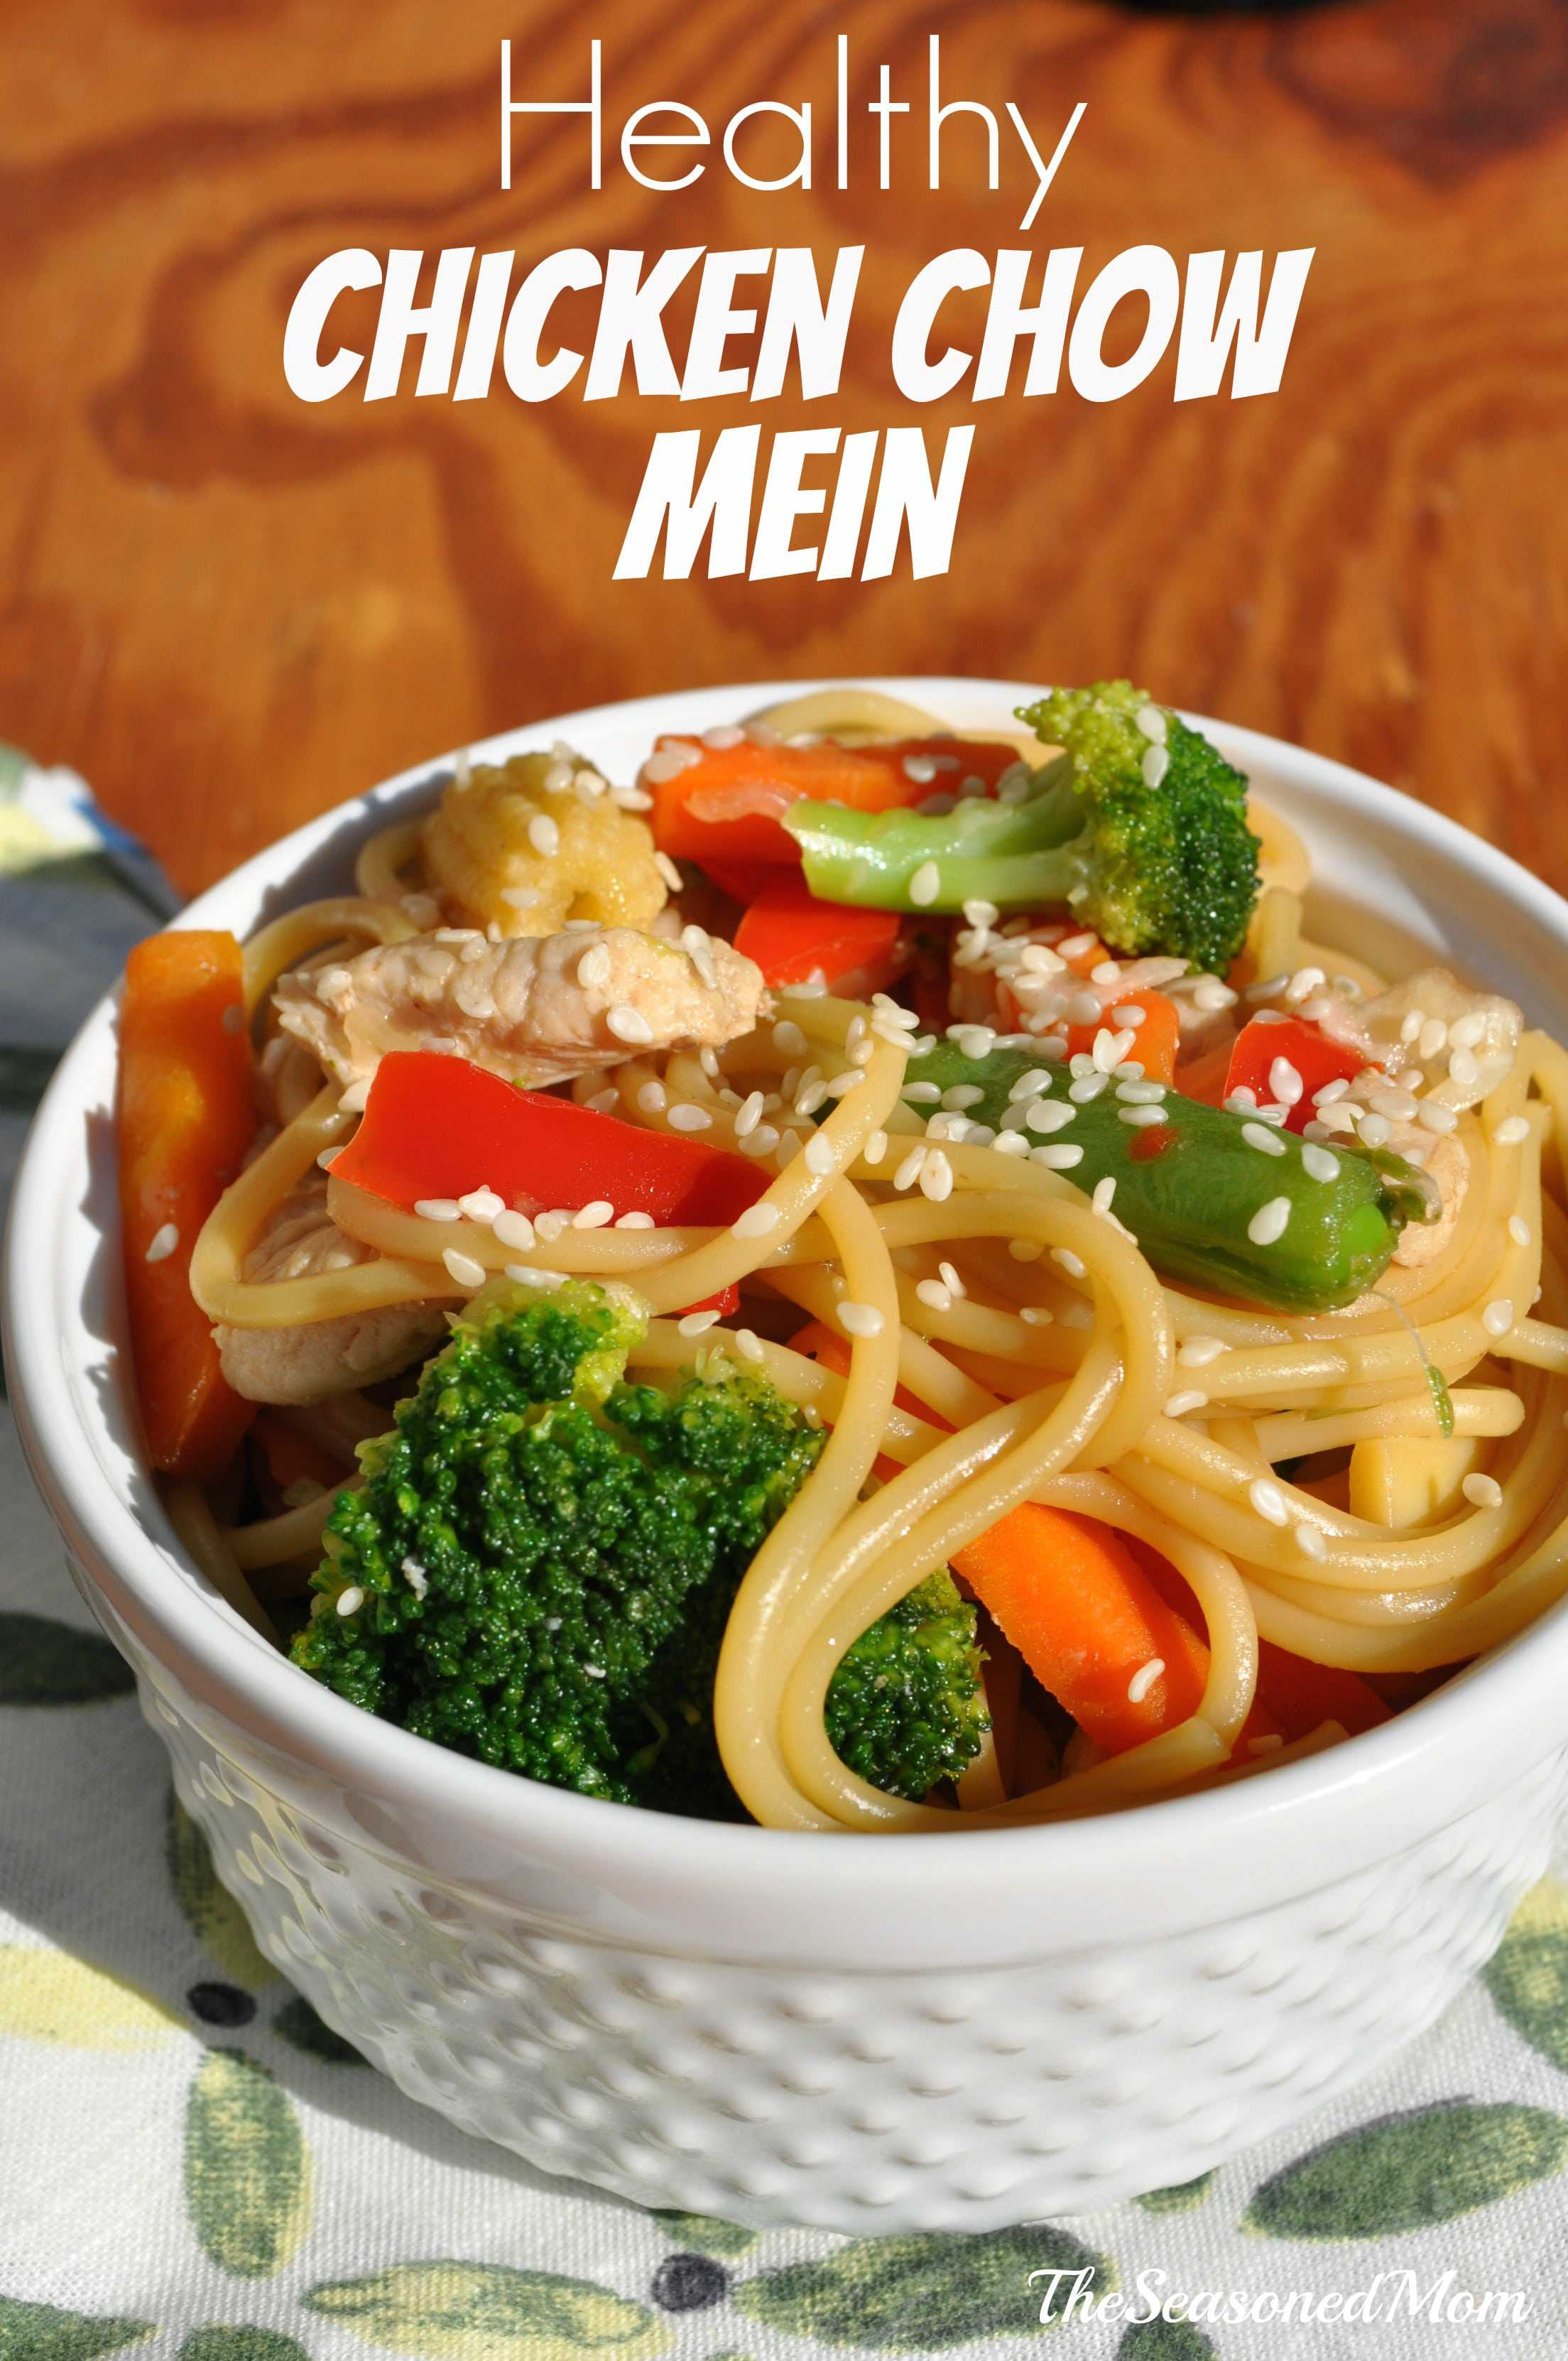 1 Dish Chicken, Broccoli, And Cheese Pasta - The Seasoned Mom-7890